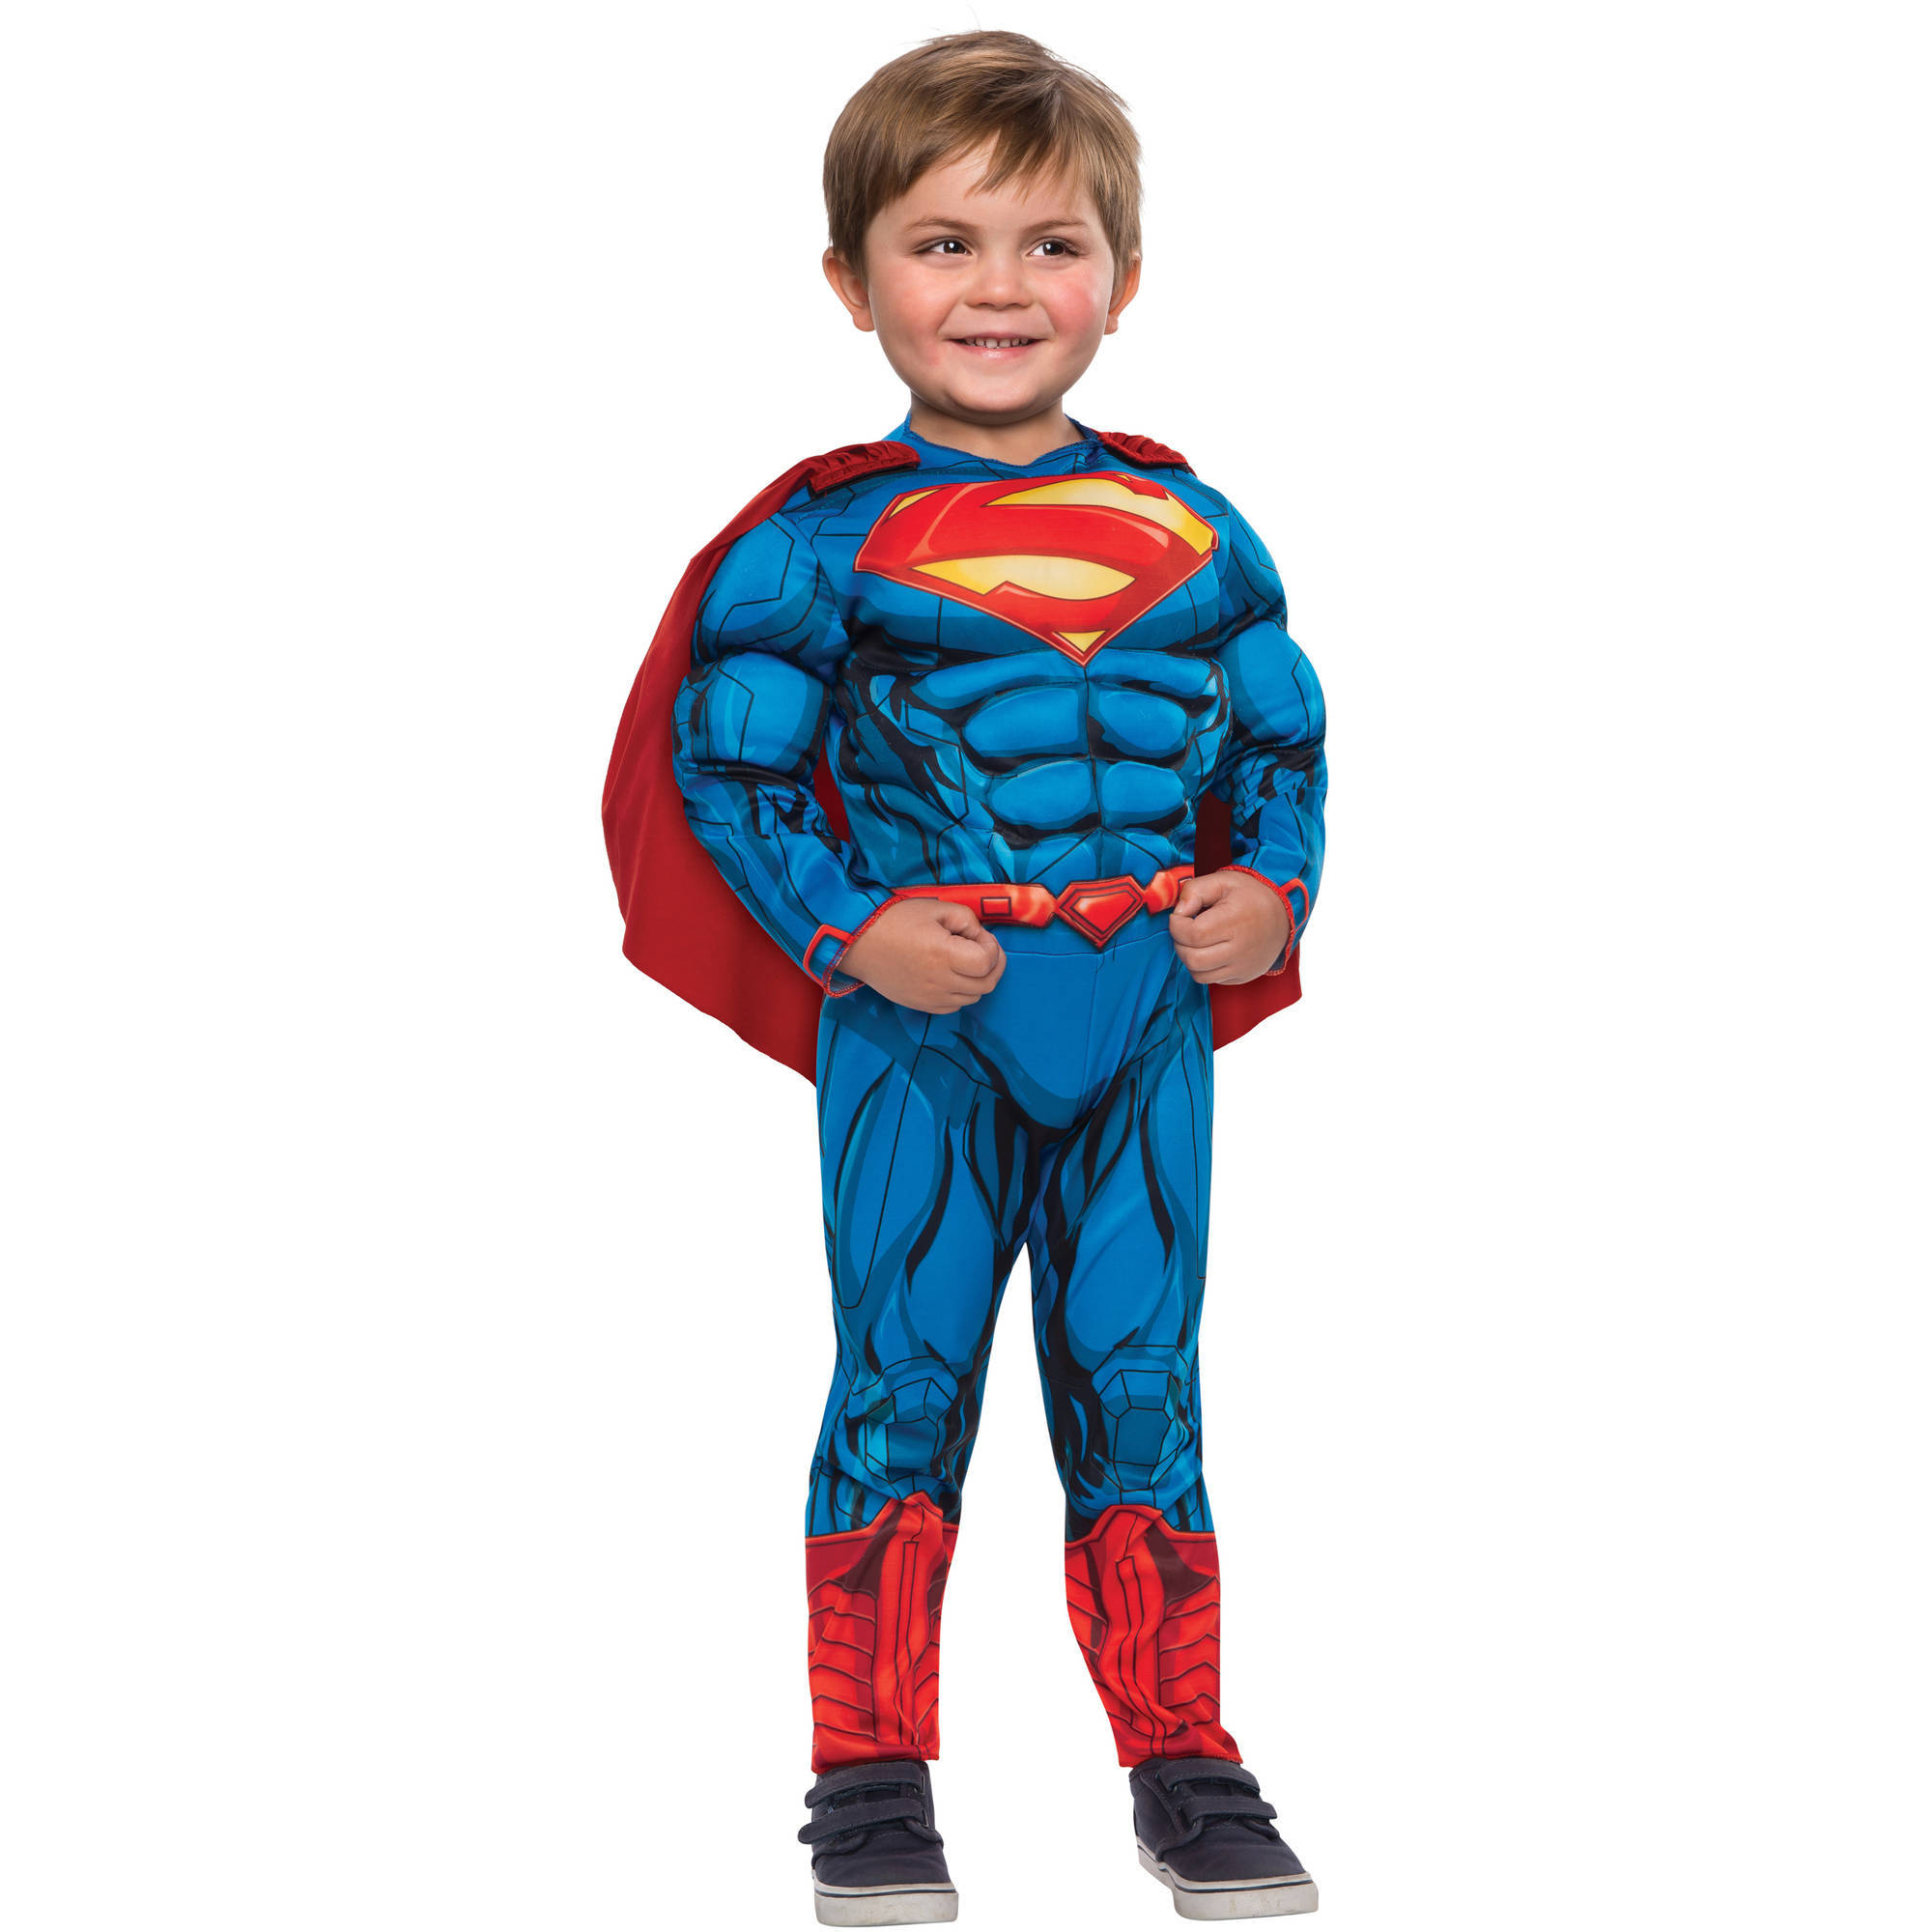 All Halloween Costumes - Walmart.com